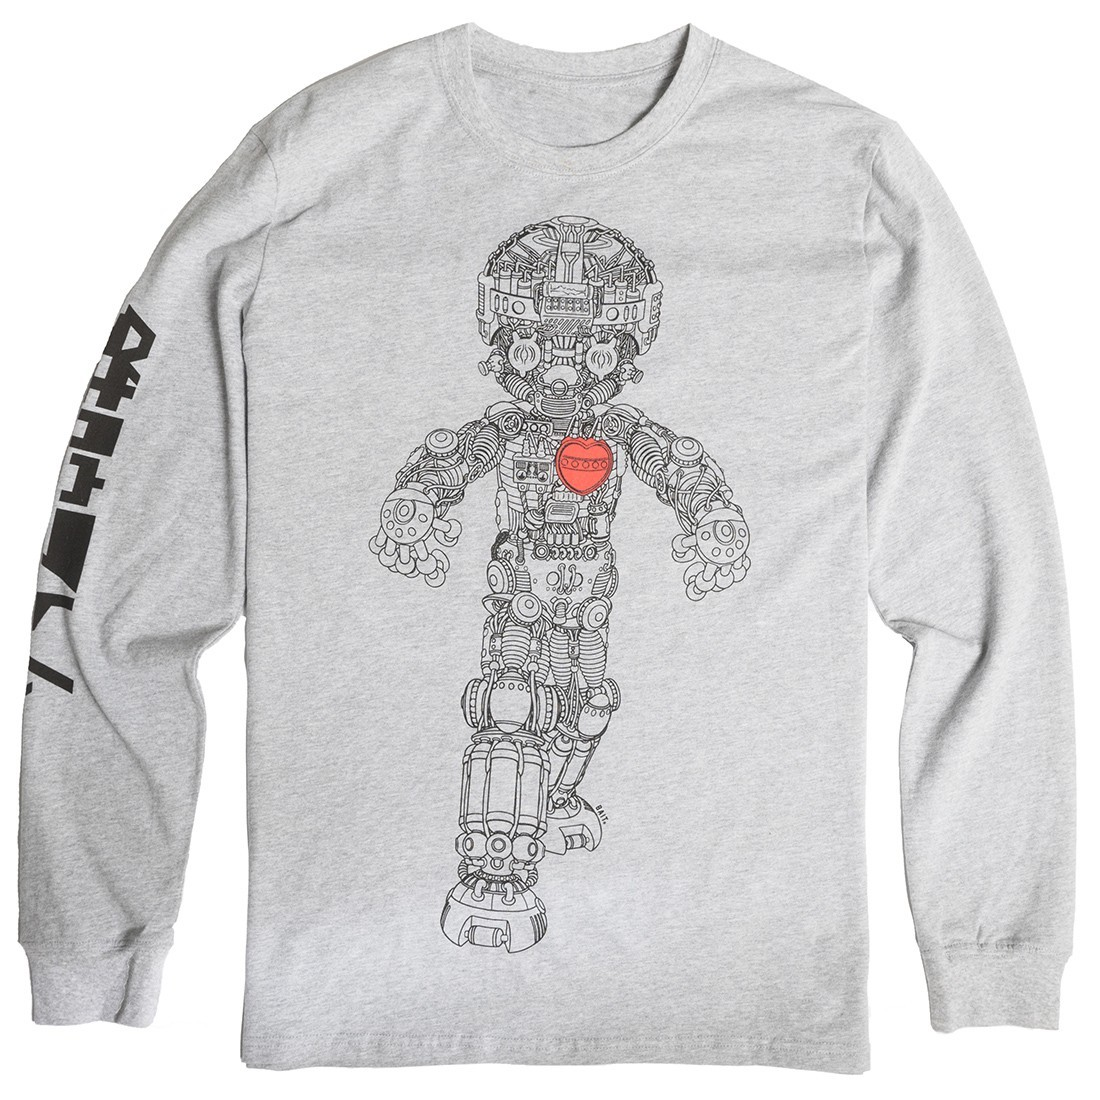 BAIT x Astro Boy Men Mechanical Long Sleeve Tee (gray)